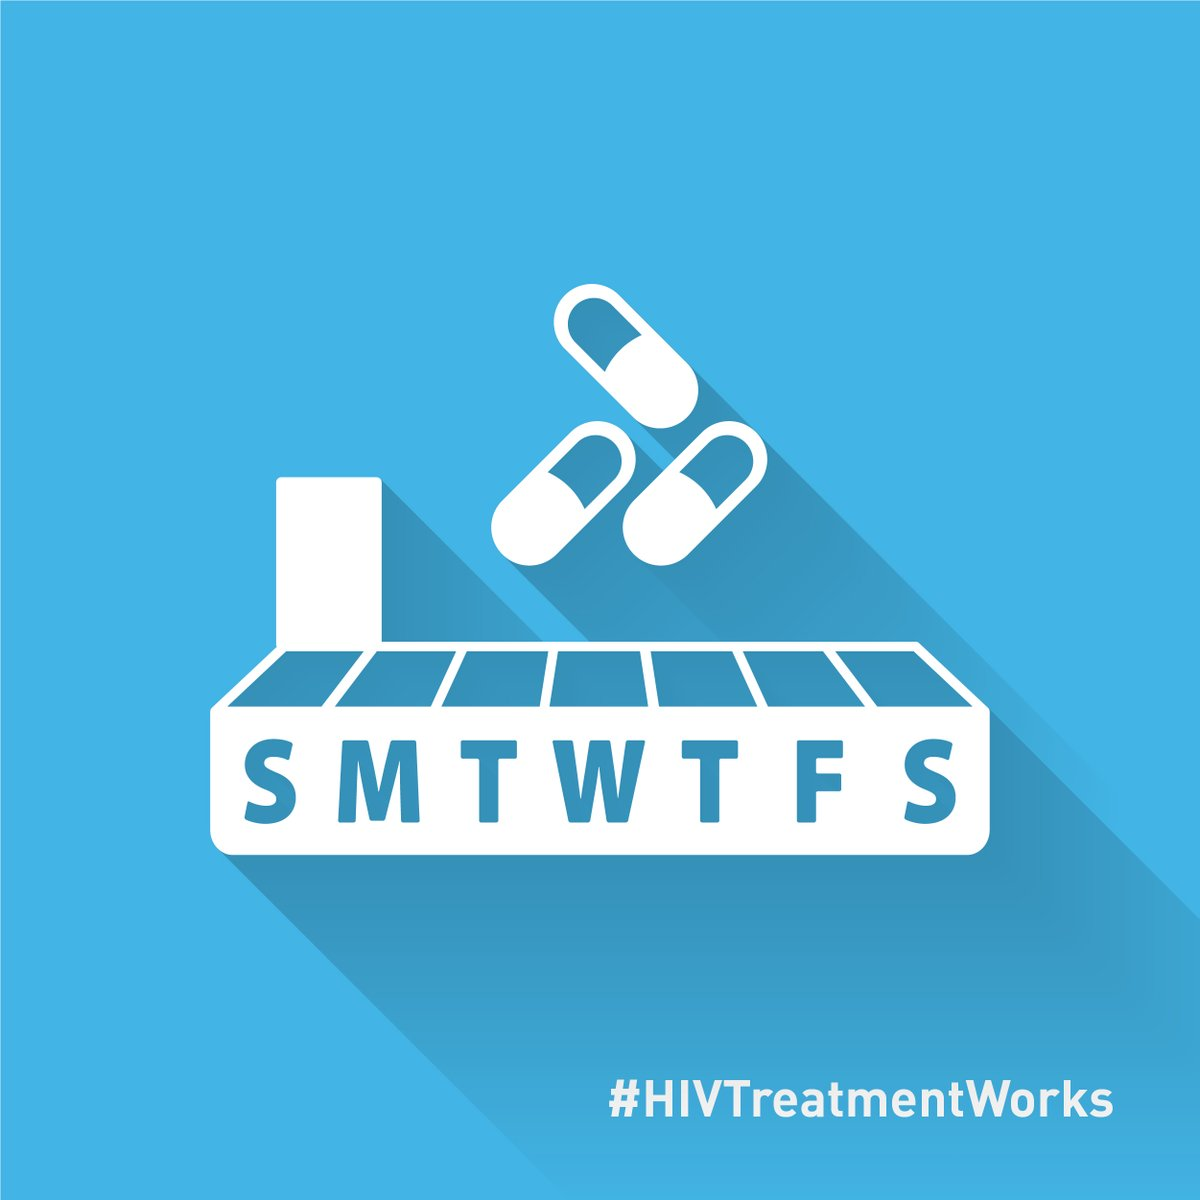 Are you having trouble remembering to take your #HIV meds? There are ways to make your regimen easier, such as using a pill container or a mobile app. Learn more:  #HIVTreatmentWorks #stopHIVtogether